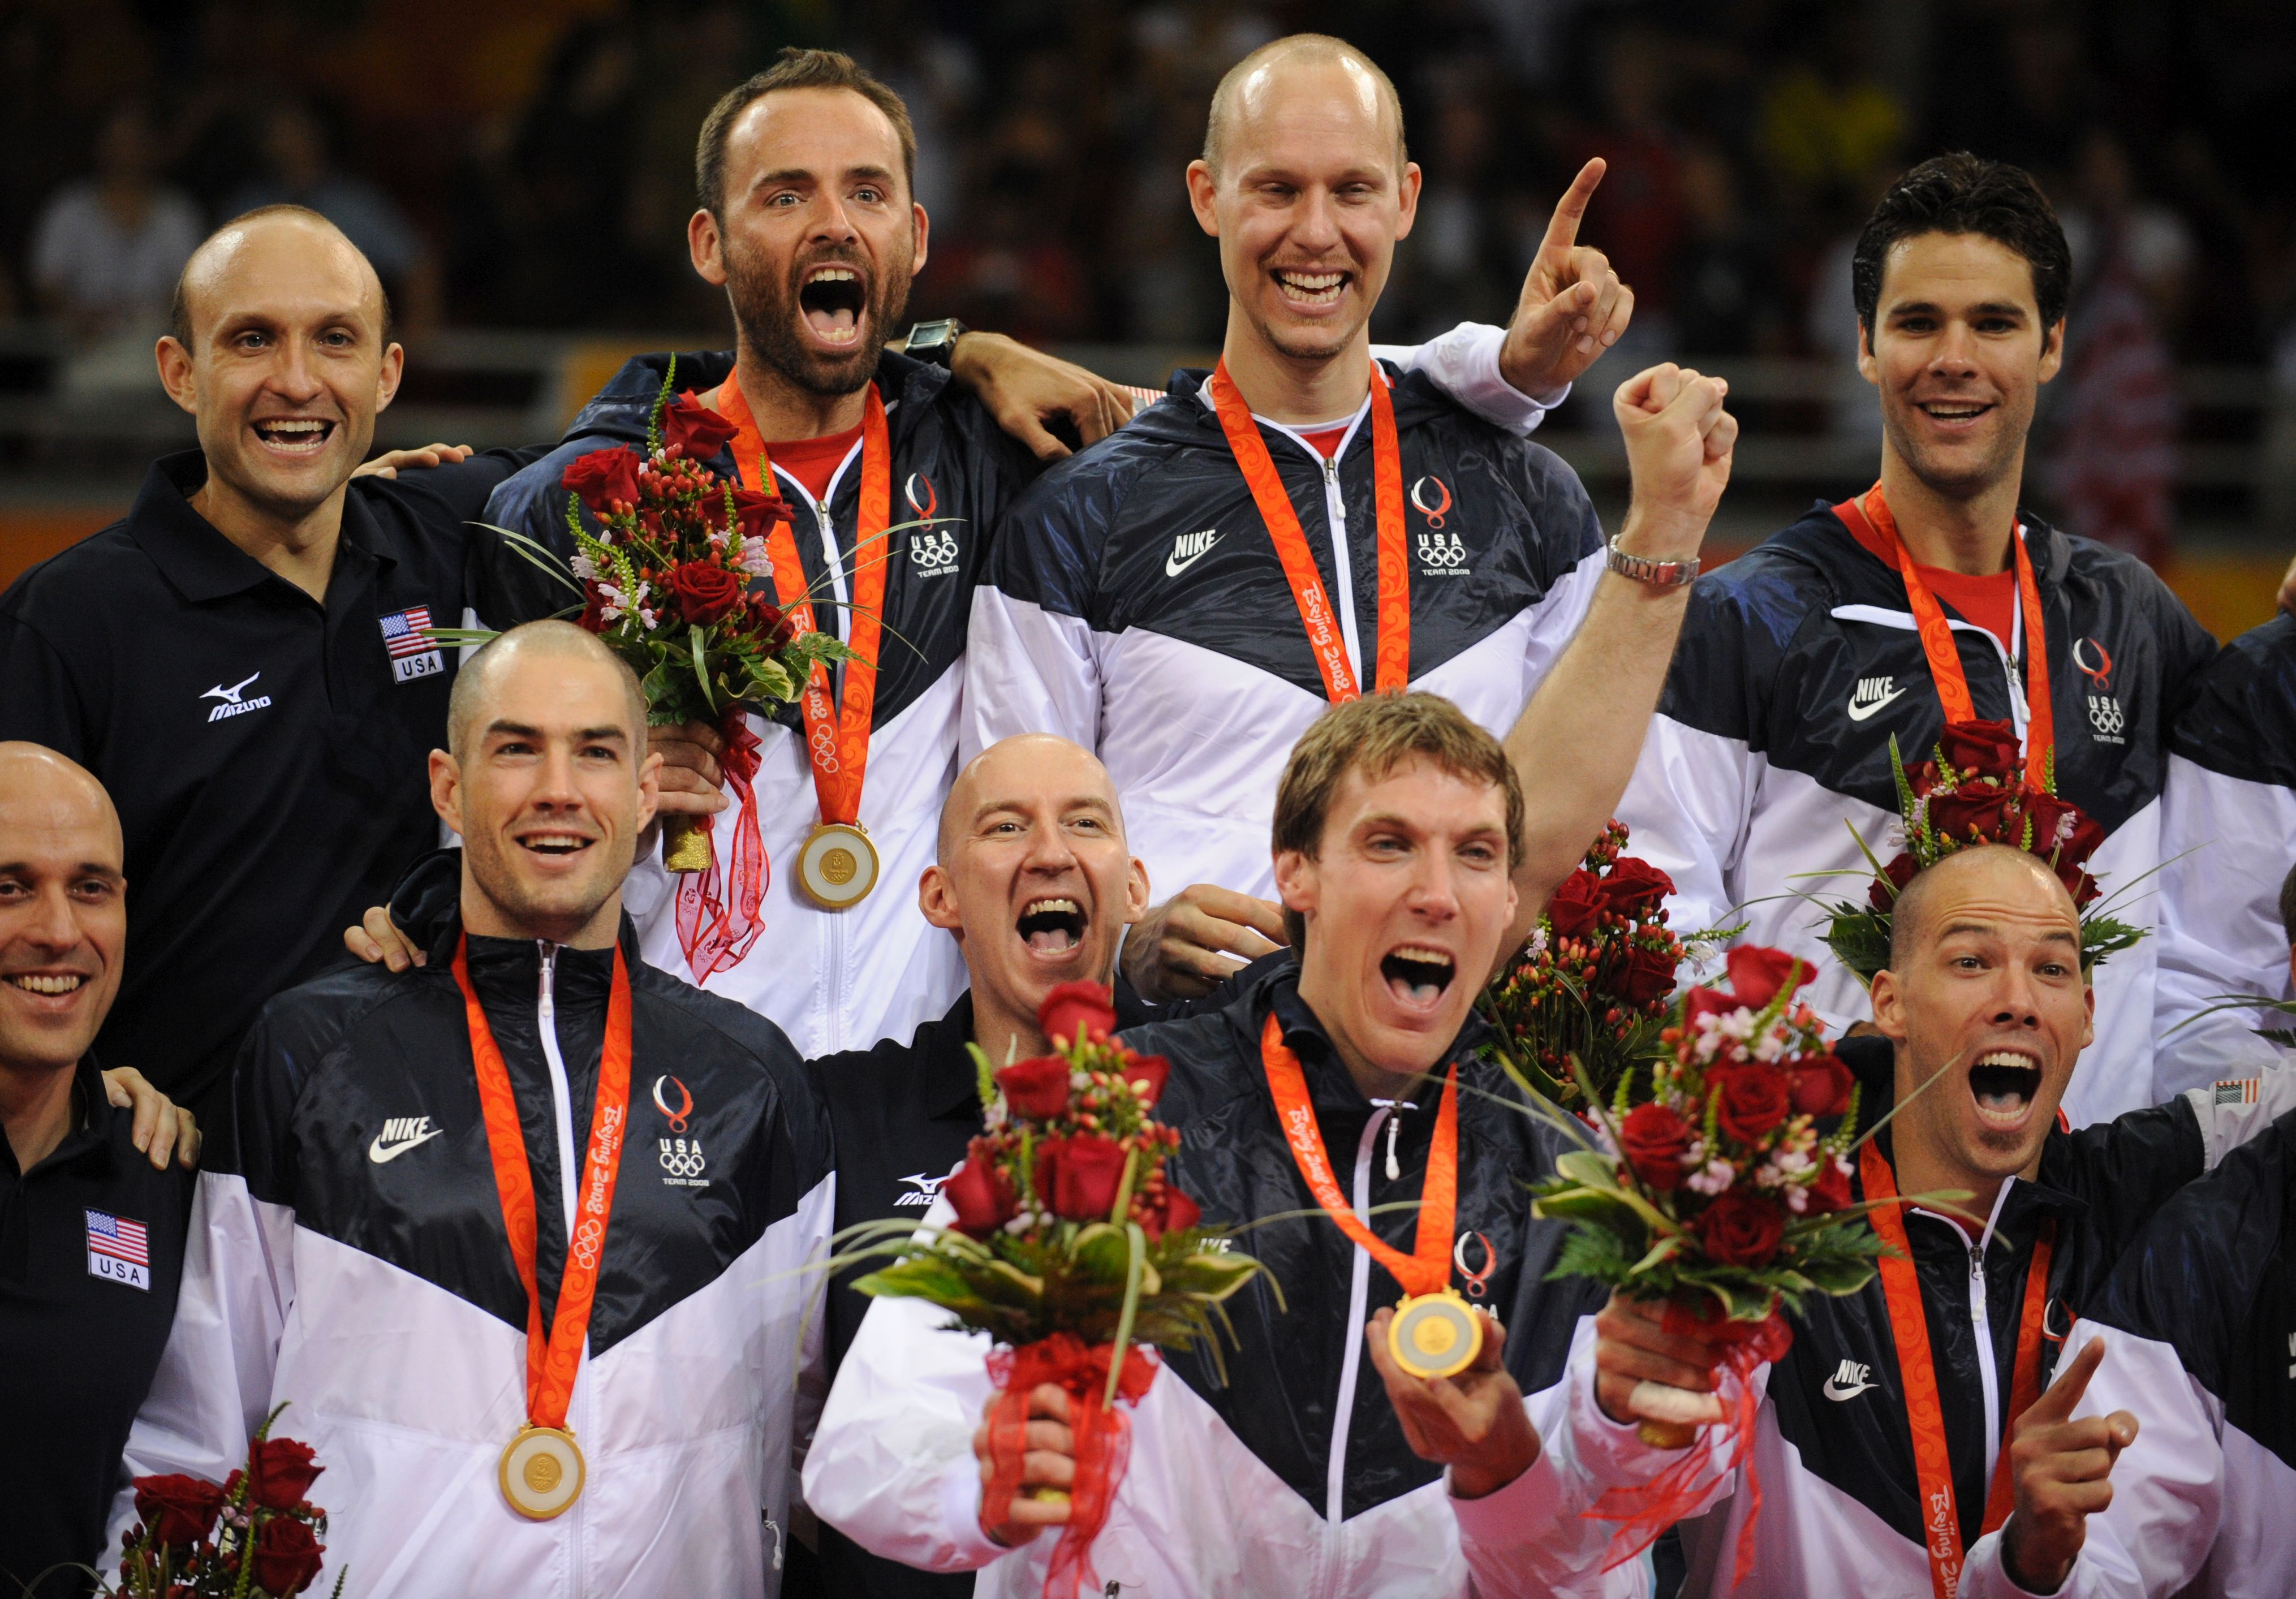 U.S. Volleyball wins gold in 2008 for the first time since 1988, rallying around coach Hugh McCutcheon whose father was murdered during the Games.